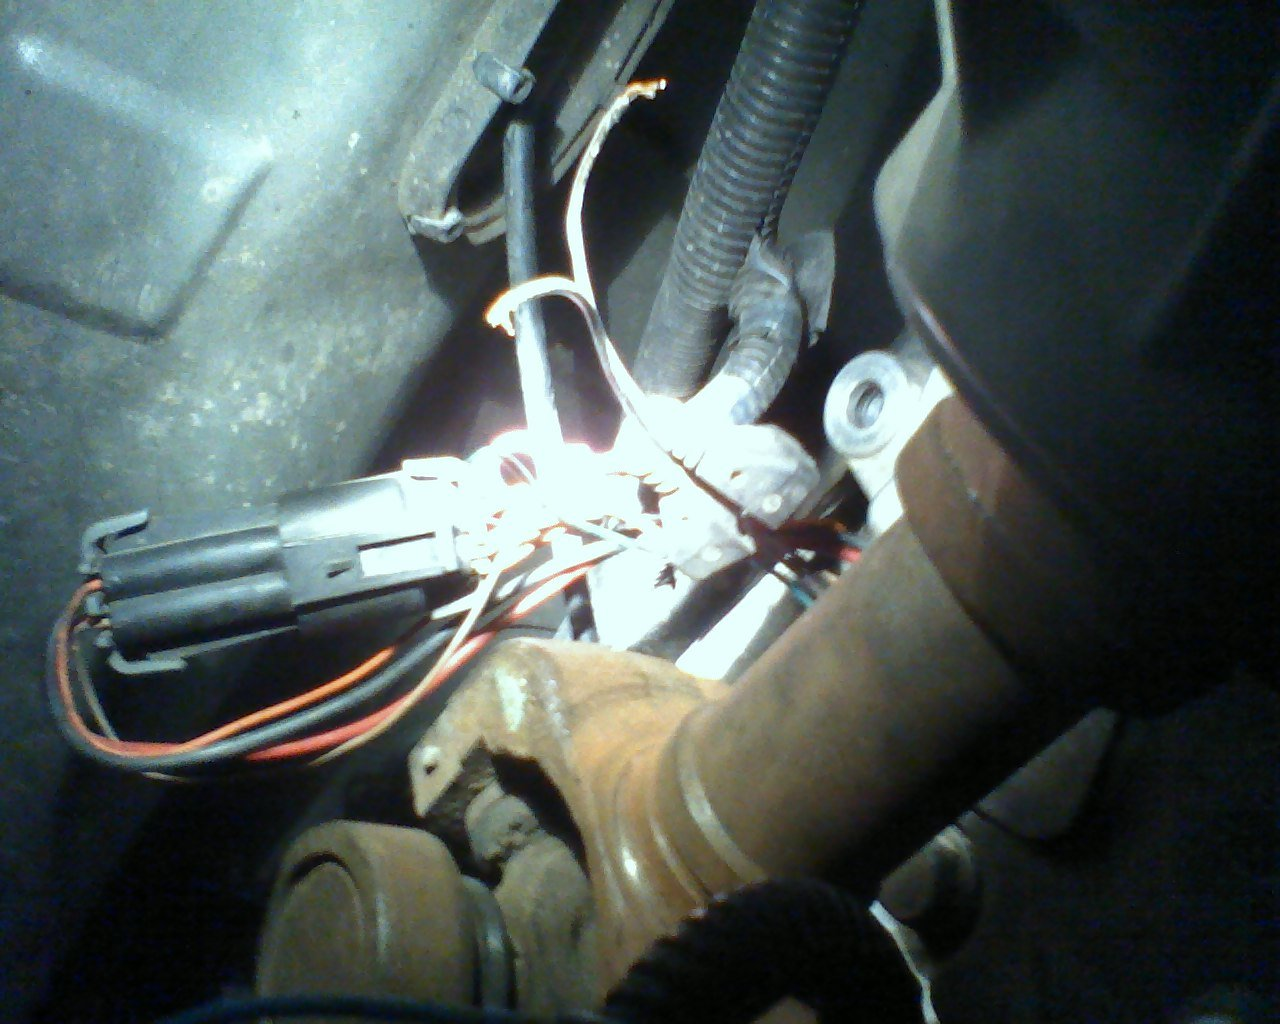 I Have A 99 Gmc Suburban 1500 4wd Need Wiring Diagram For The Chevy Vss Harness Here Comes Pics